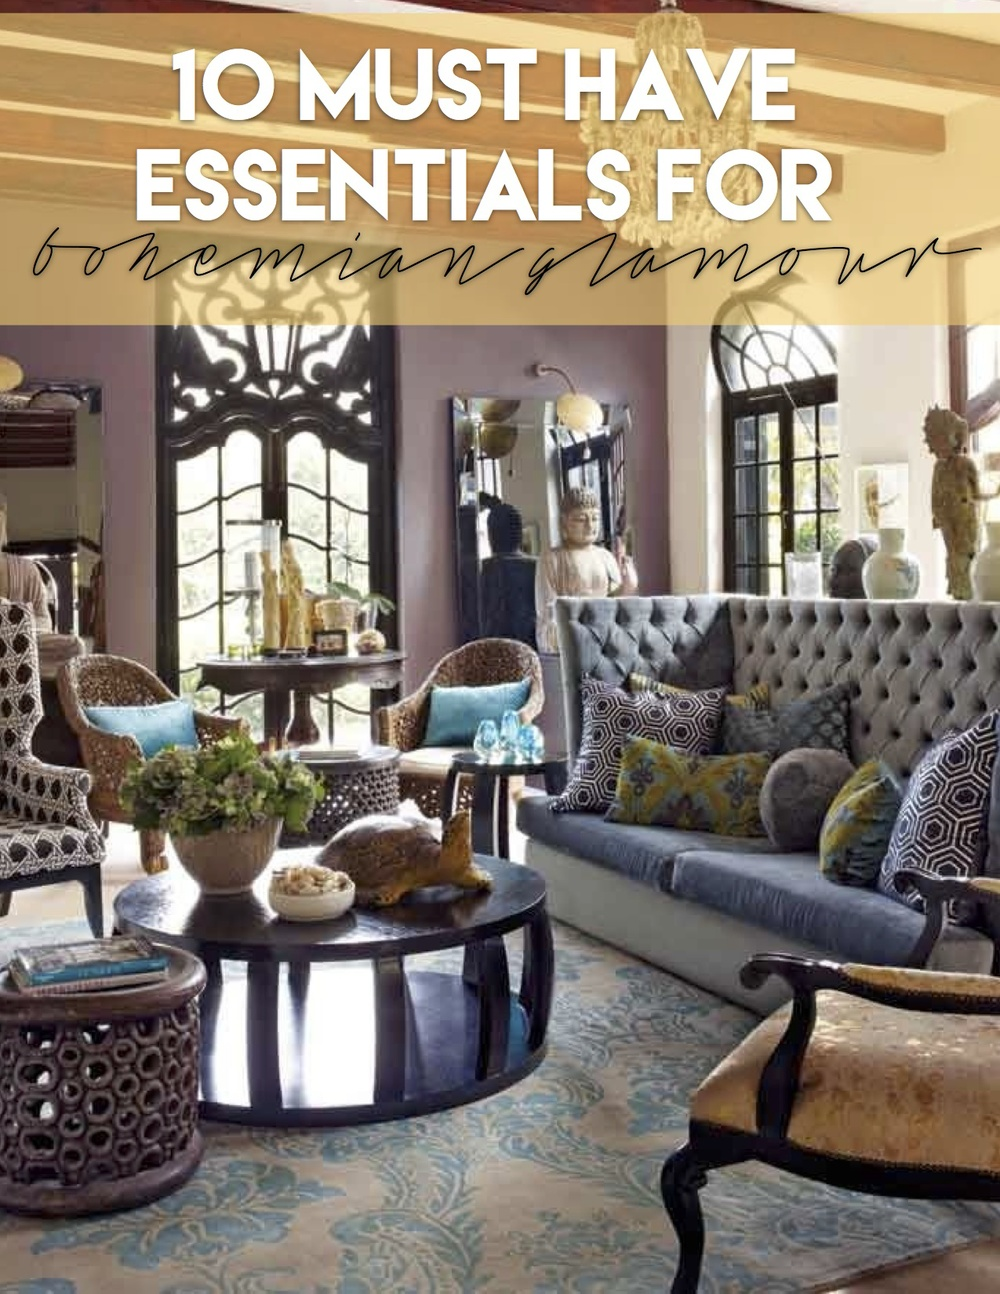 BOHEMIAN GLAMOUR 10 must have decorating essentials The Decorista